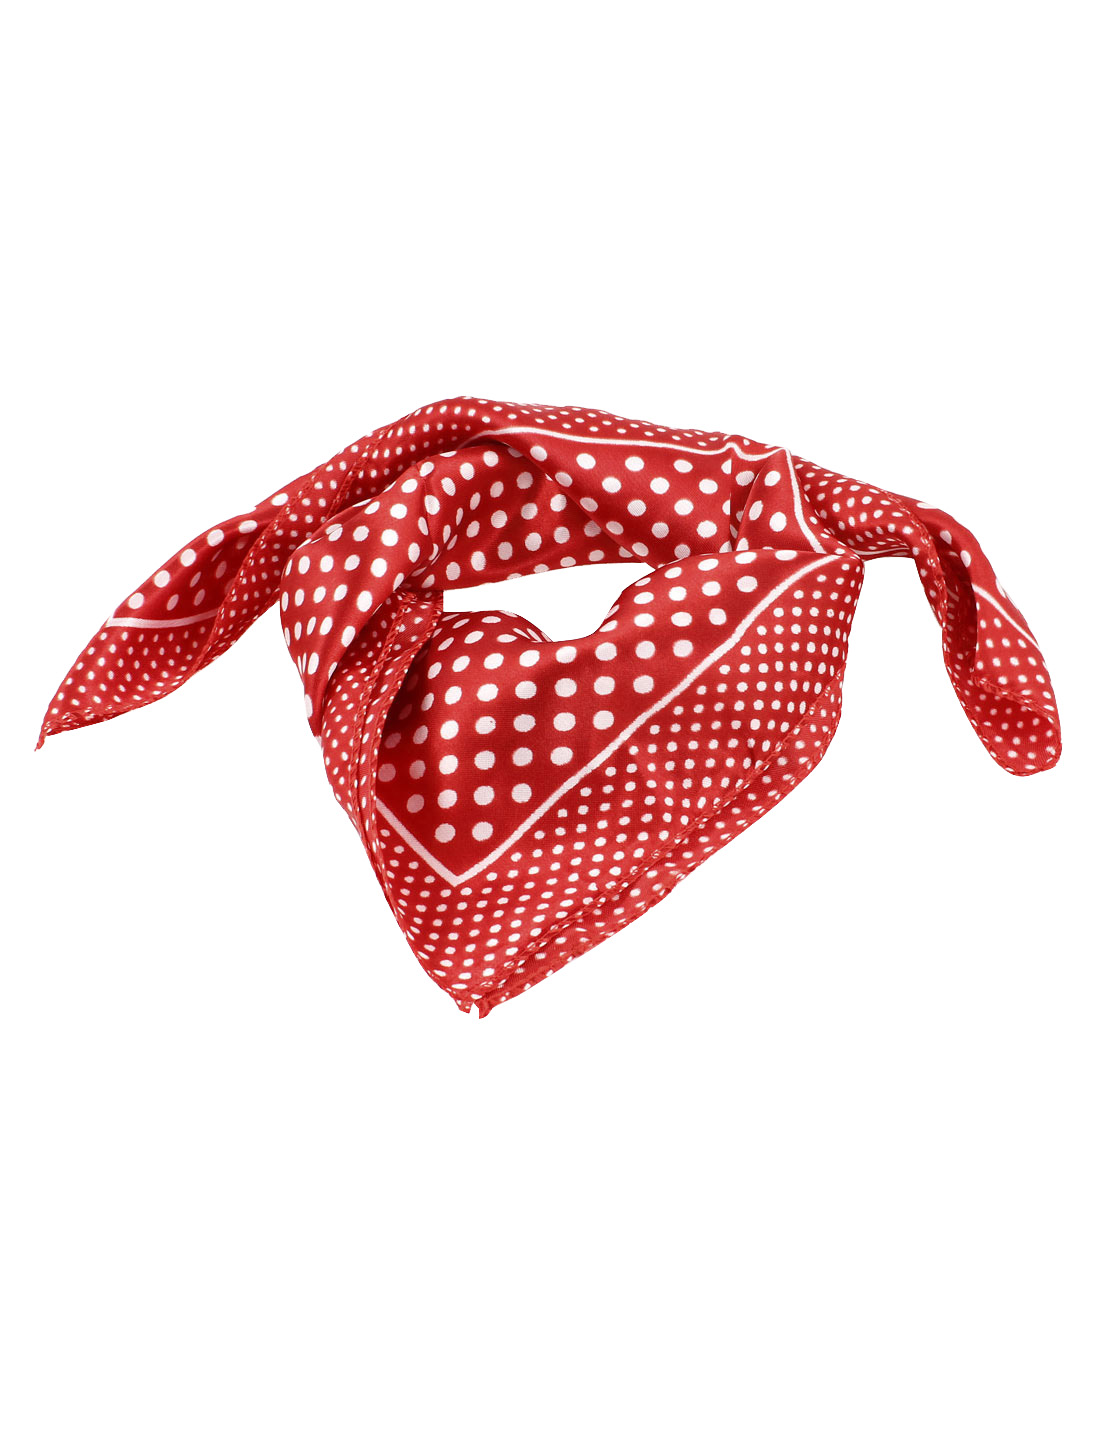 White Dots Pattern Polyester Red Neck Scarf Kerchief for Women Red Neck Scarves For Women